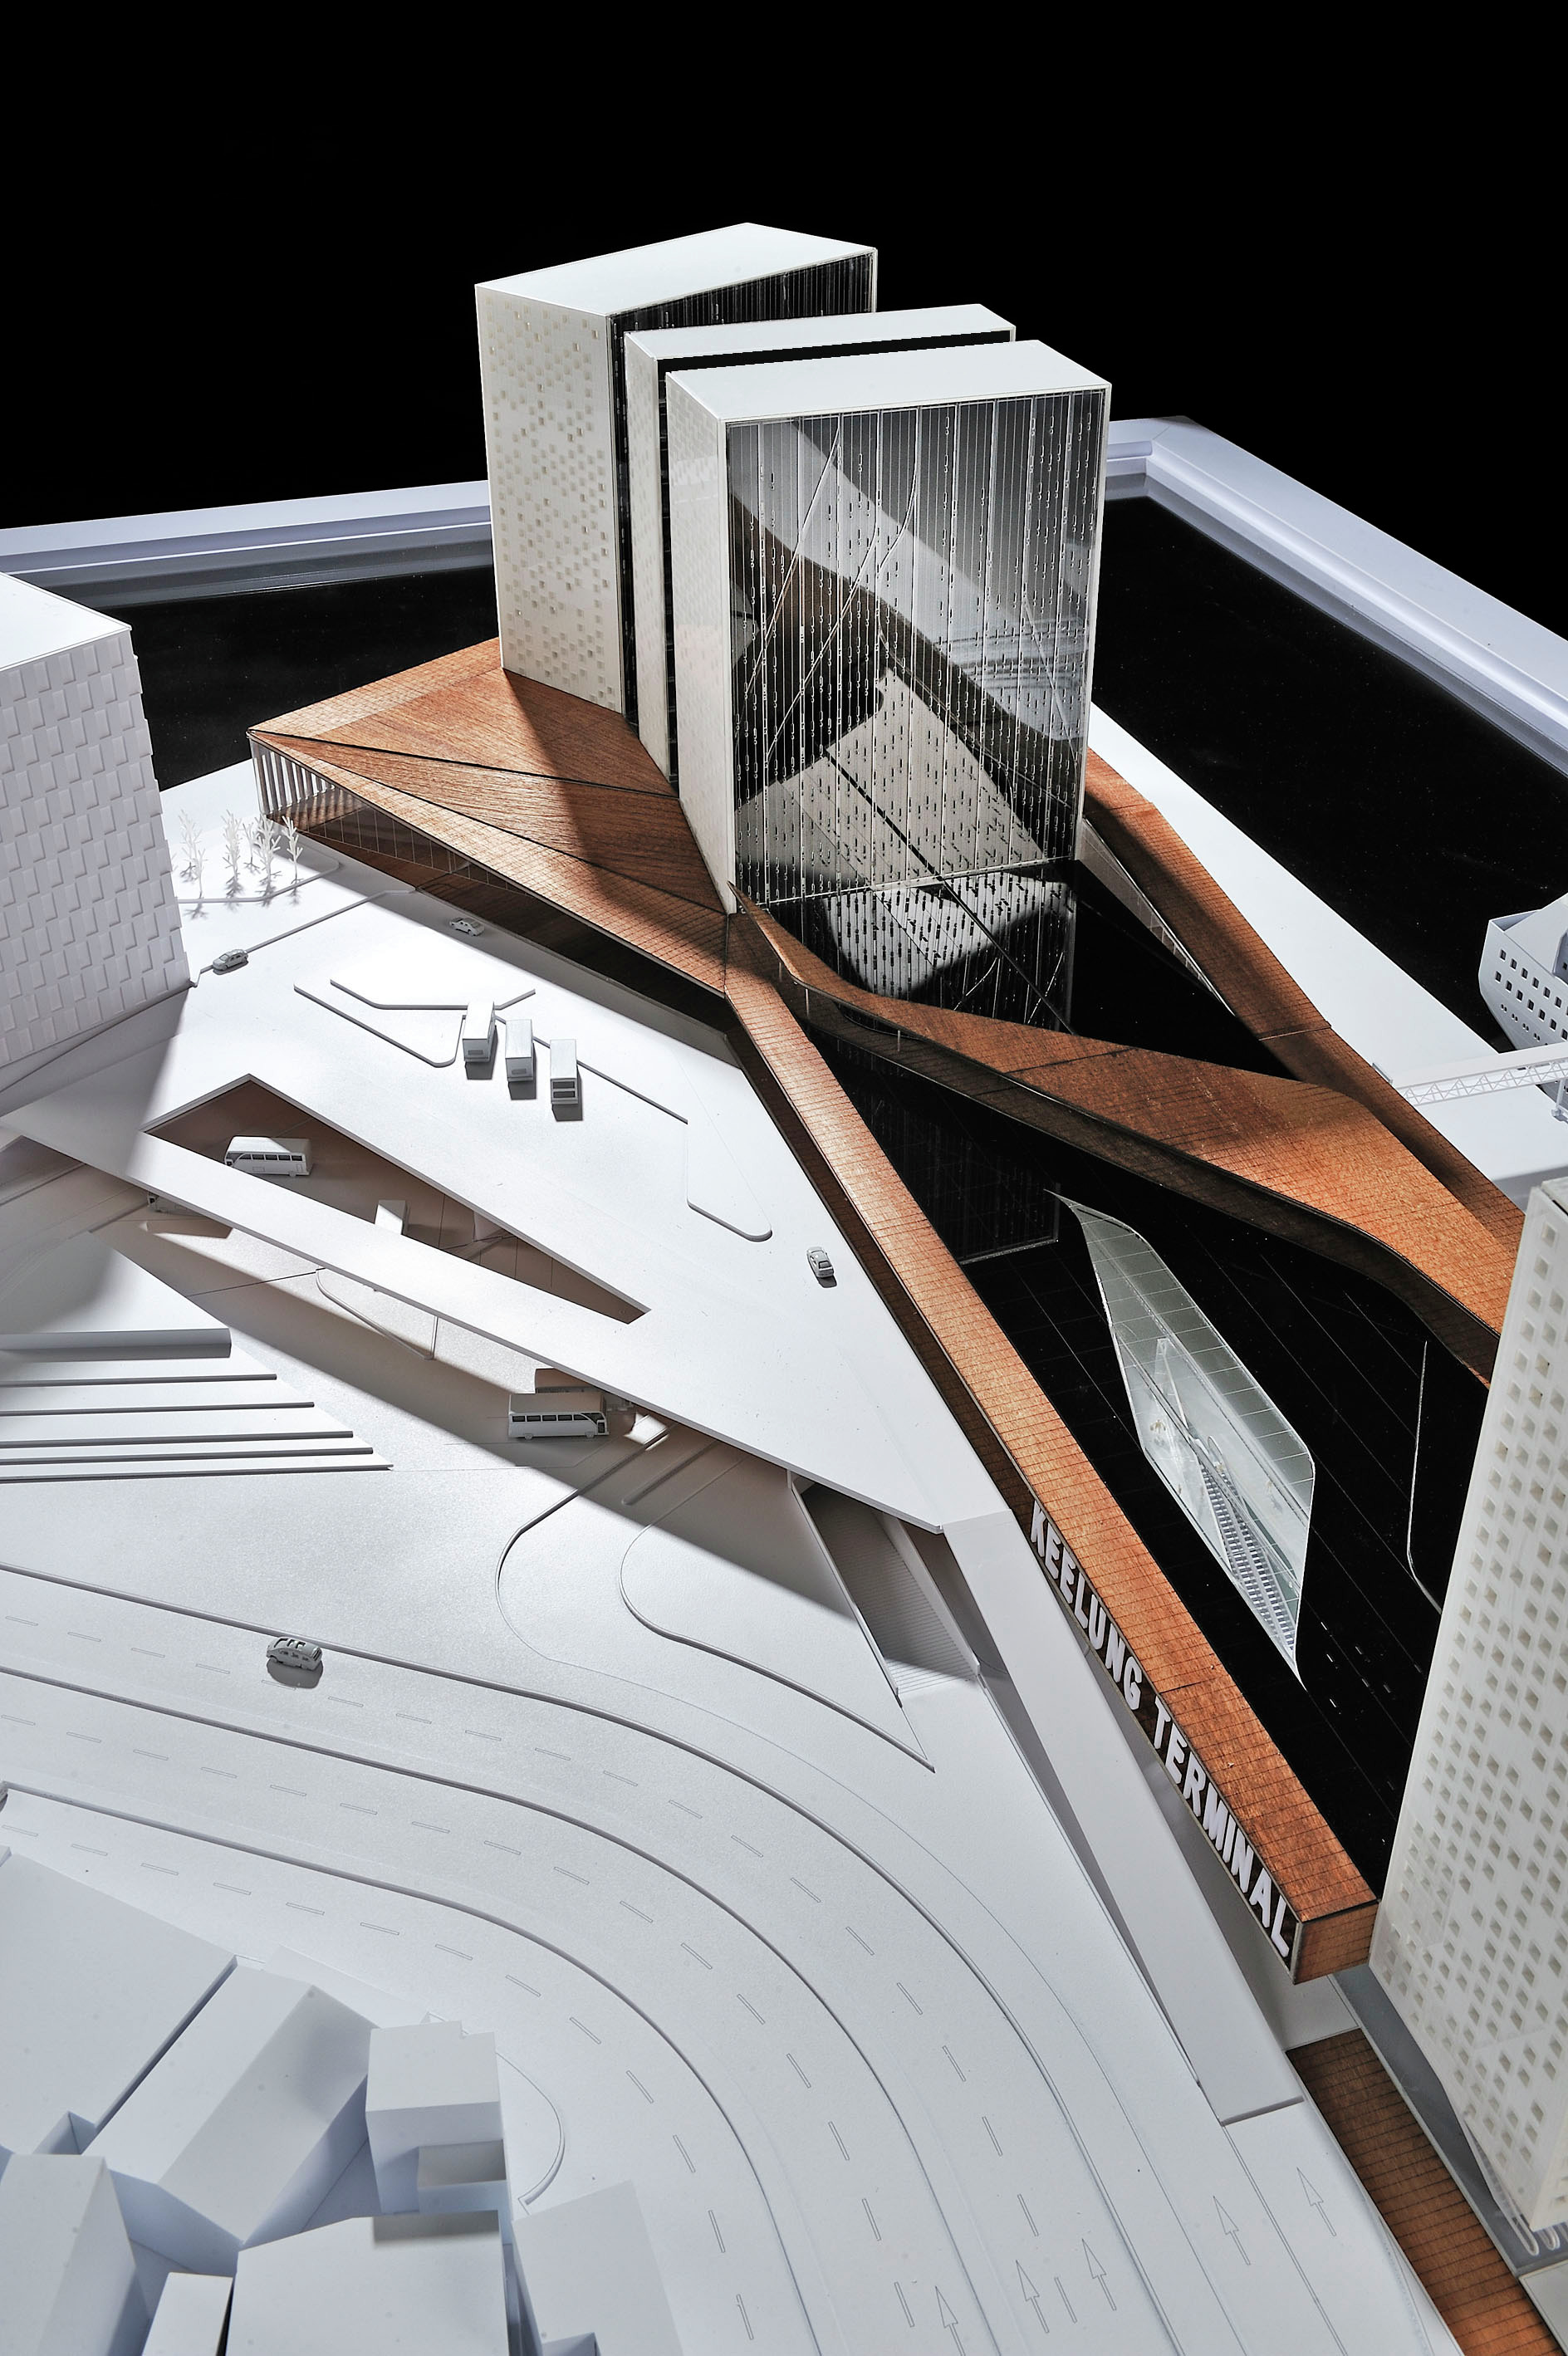 Keelung new harbor service building competition entry for Architectural concept models